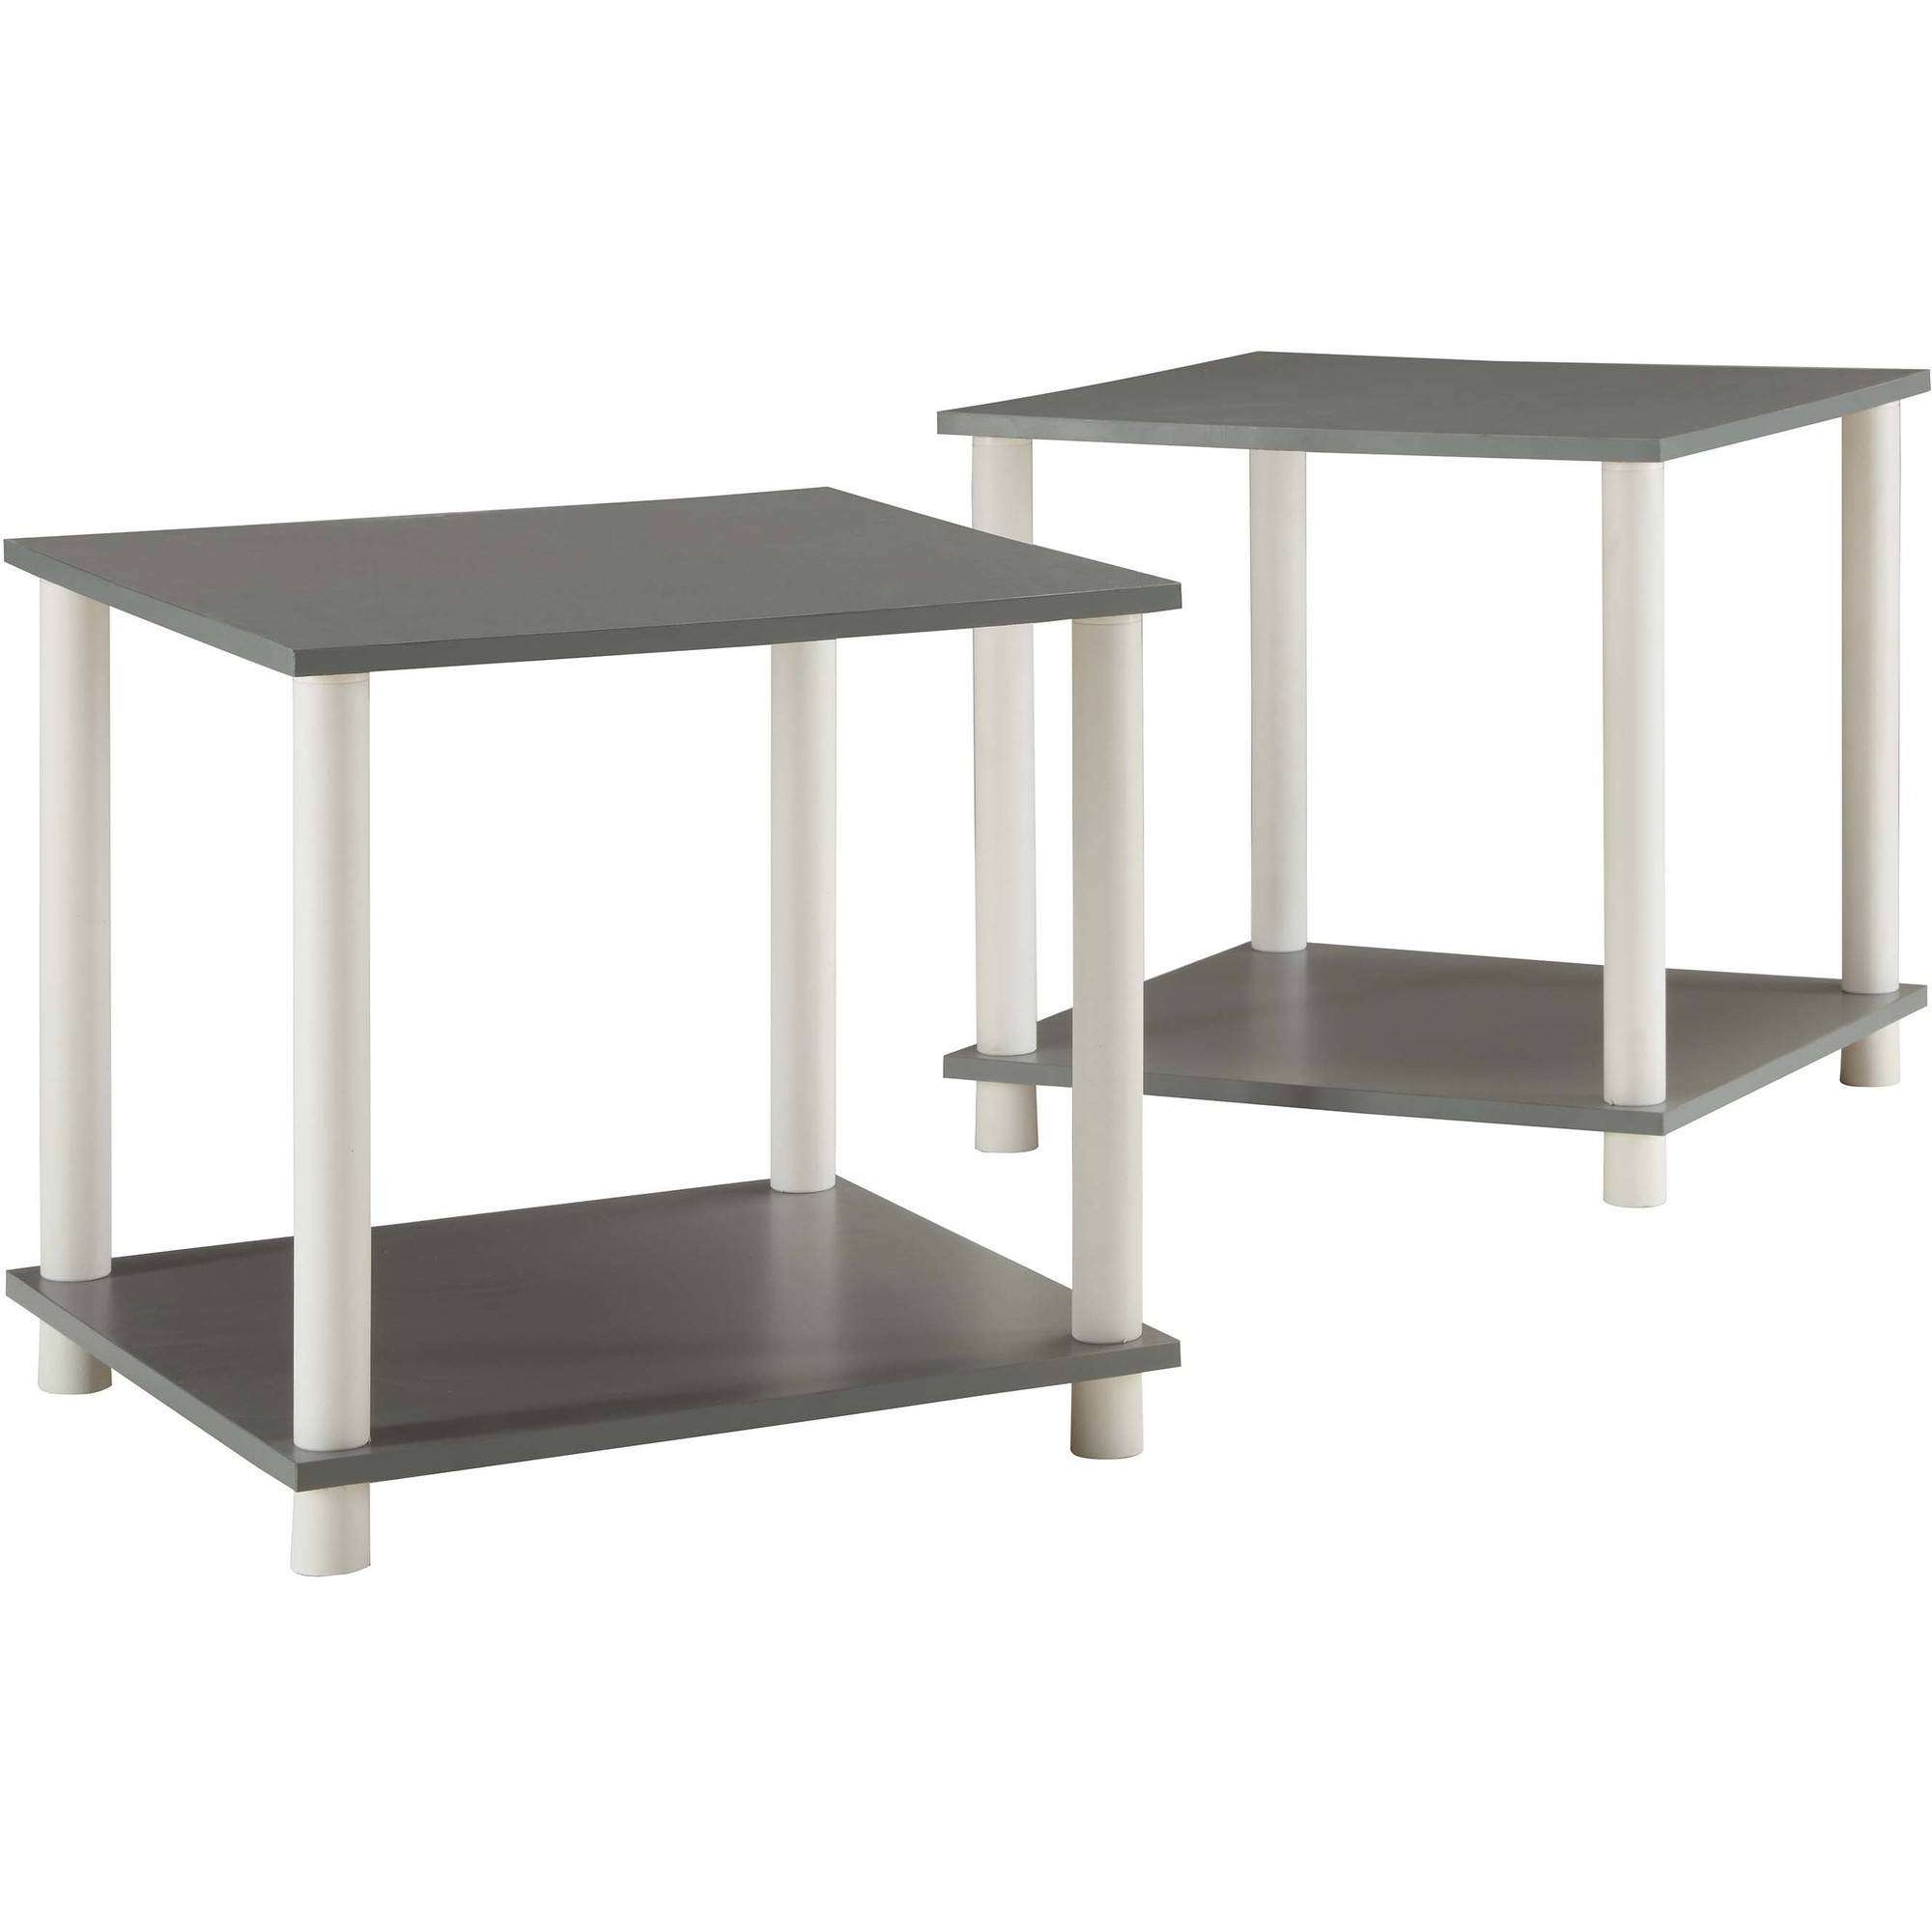 Mainstays No Tools Single Cube Storage Shelf Side Tables, Set Of 2 Pertaining To Current White Cube Coffee Tables (View 10 of 20)